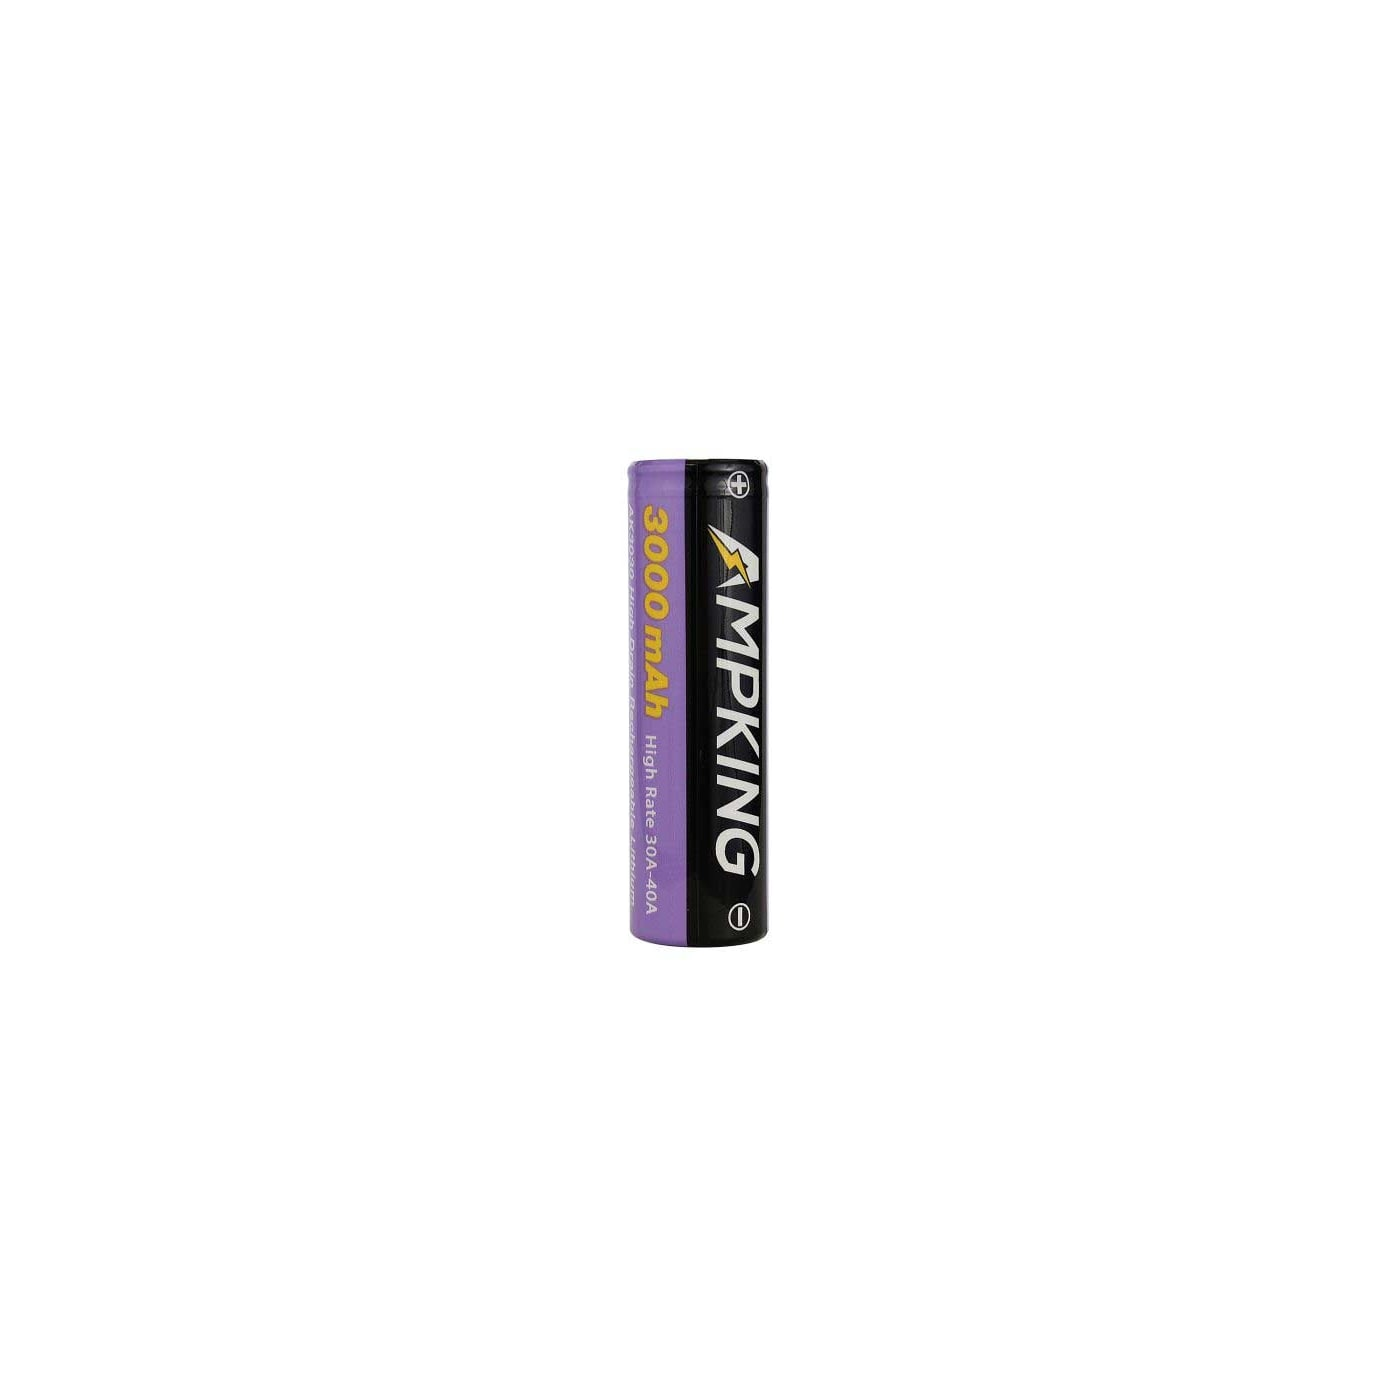 Innokin 20700 Battery - Single